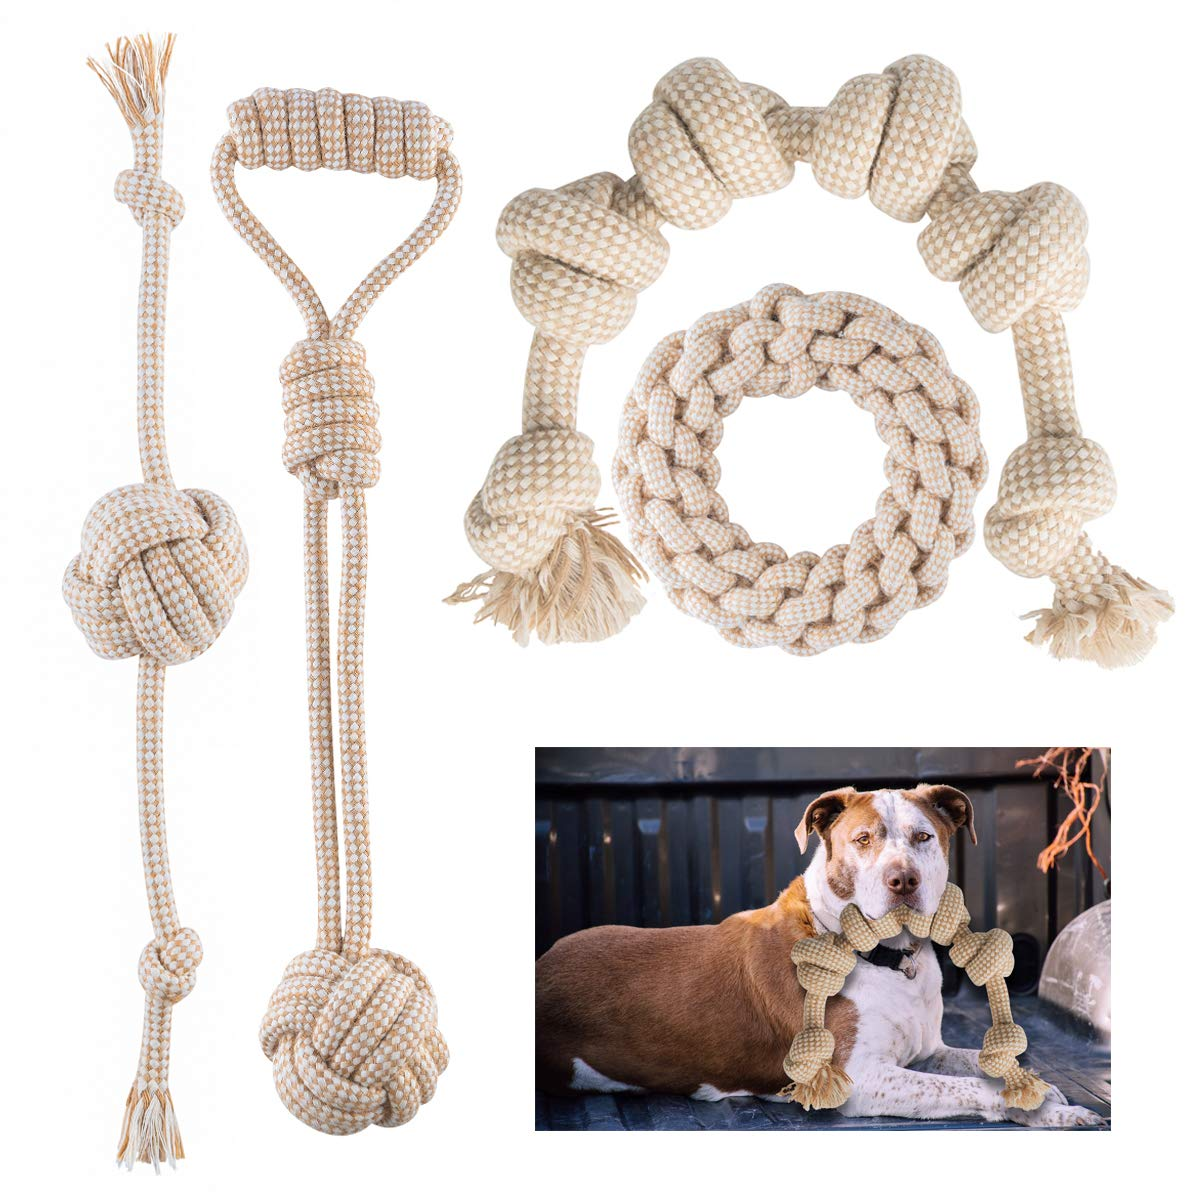 FONPOO Dog Toys for Aggressive Chewers, Natural Cotton Rope Meet Dog Chewers Relieve Dog Boredom Dog Toy Pack of 4 by FONPOO